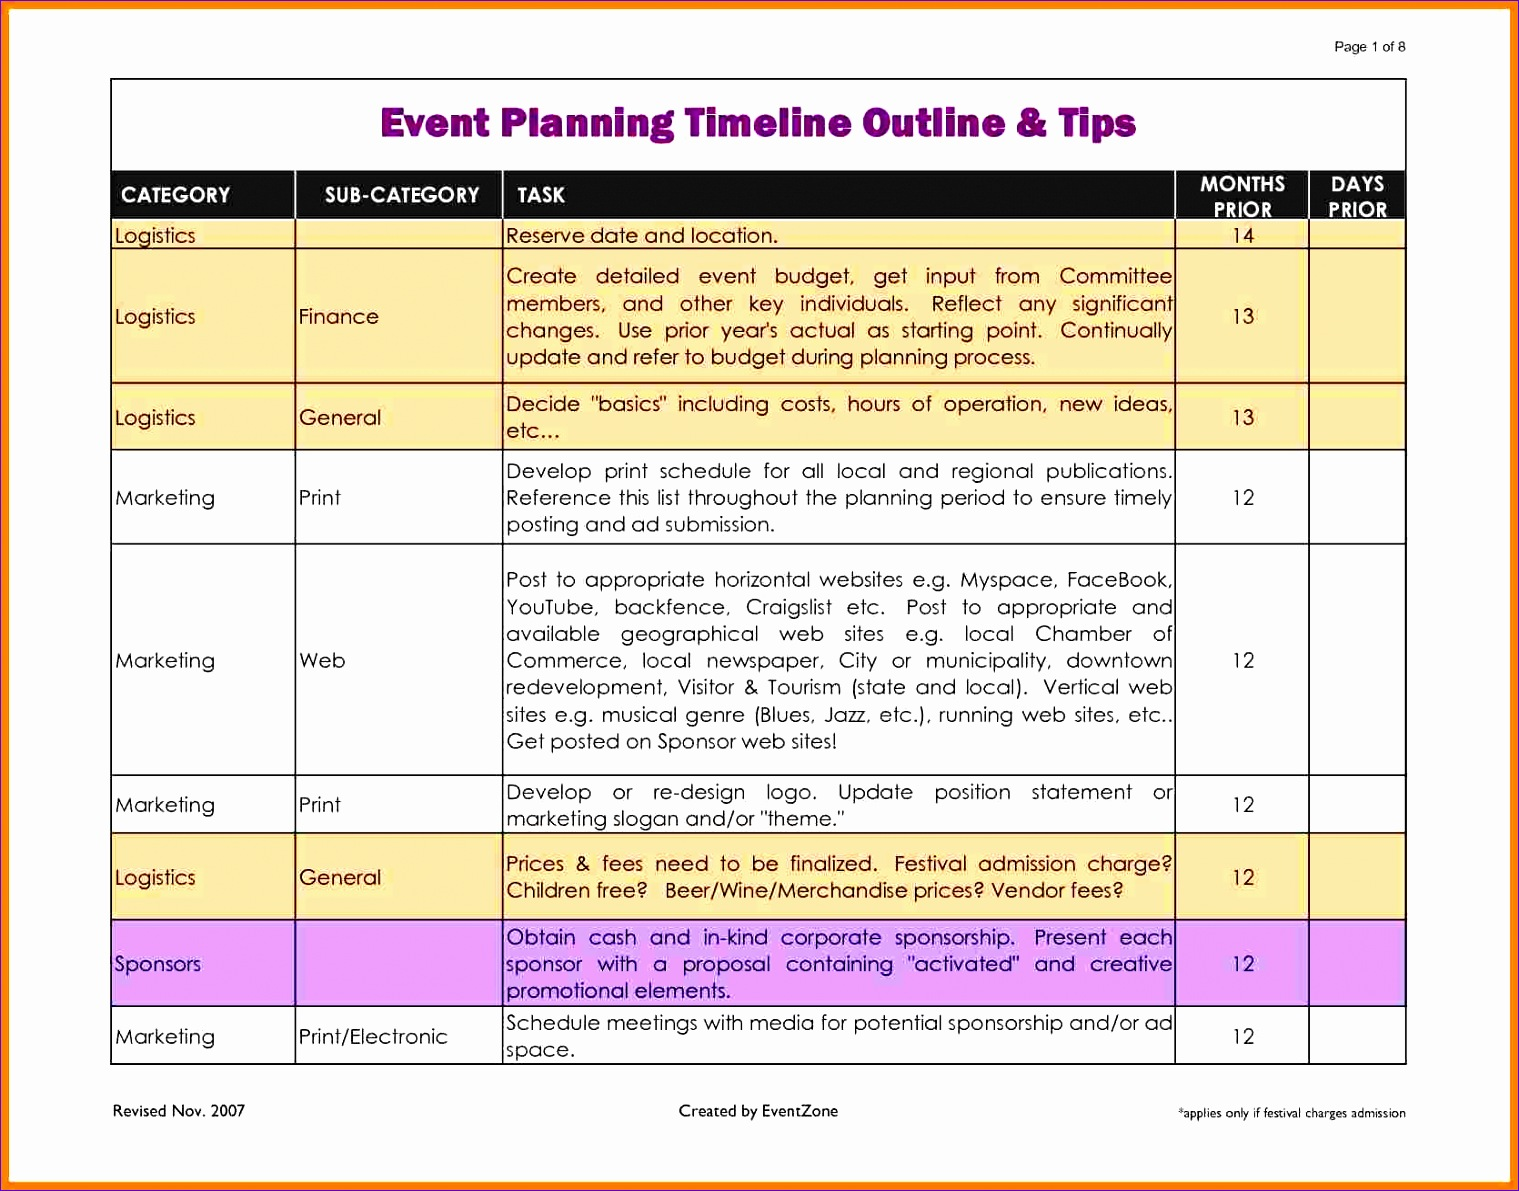 Event Planning Checklist Pasoevolistco - Event planning timeline template